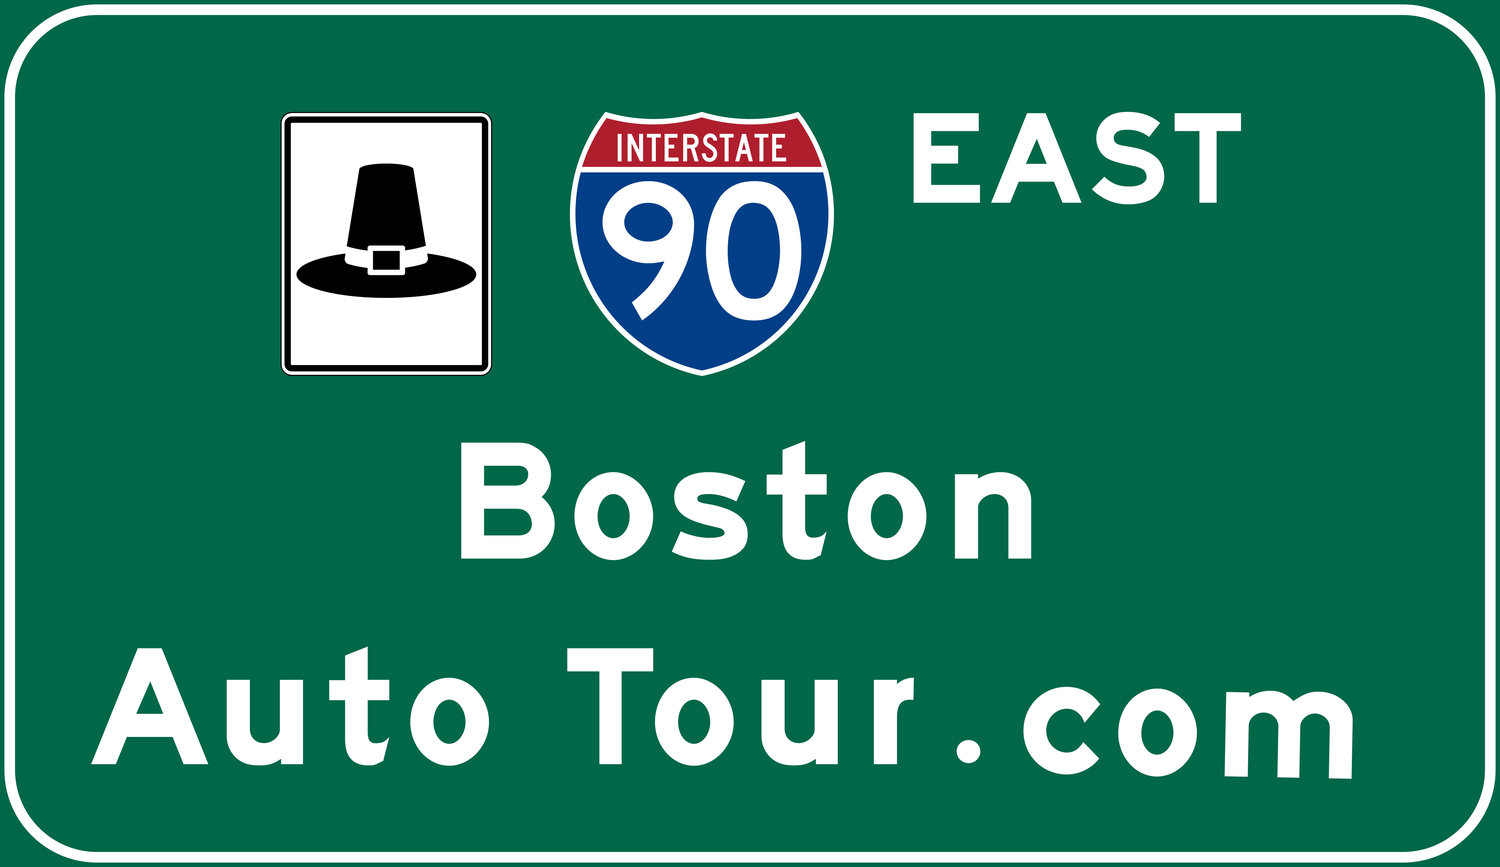 The Boston Auto Tour